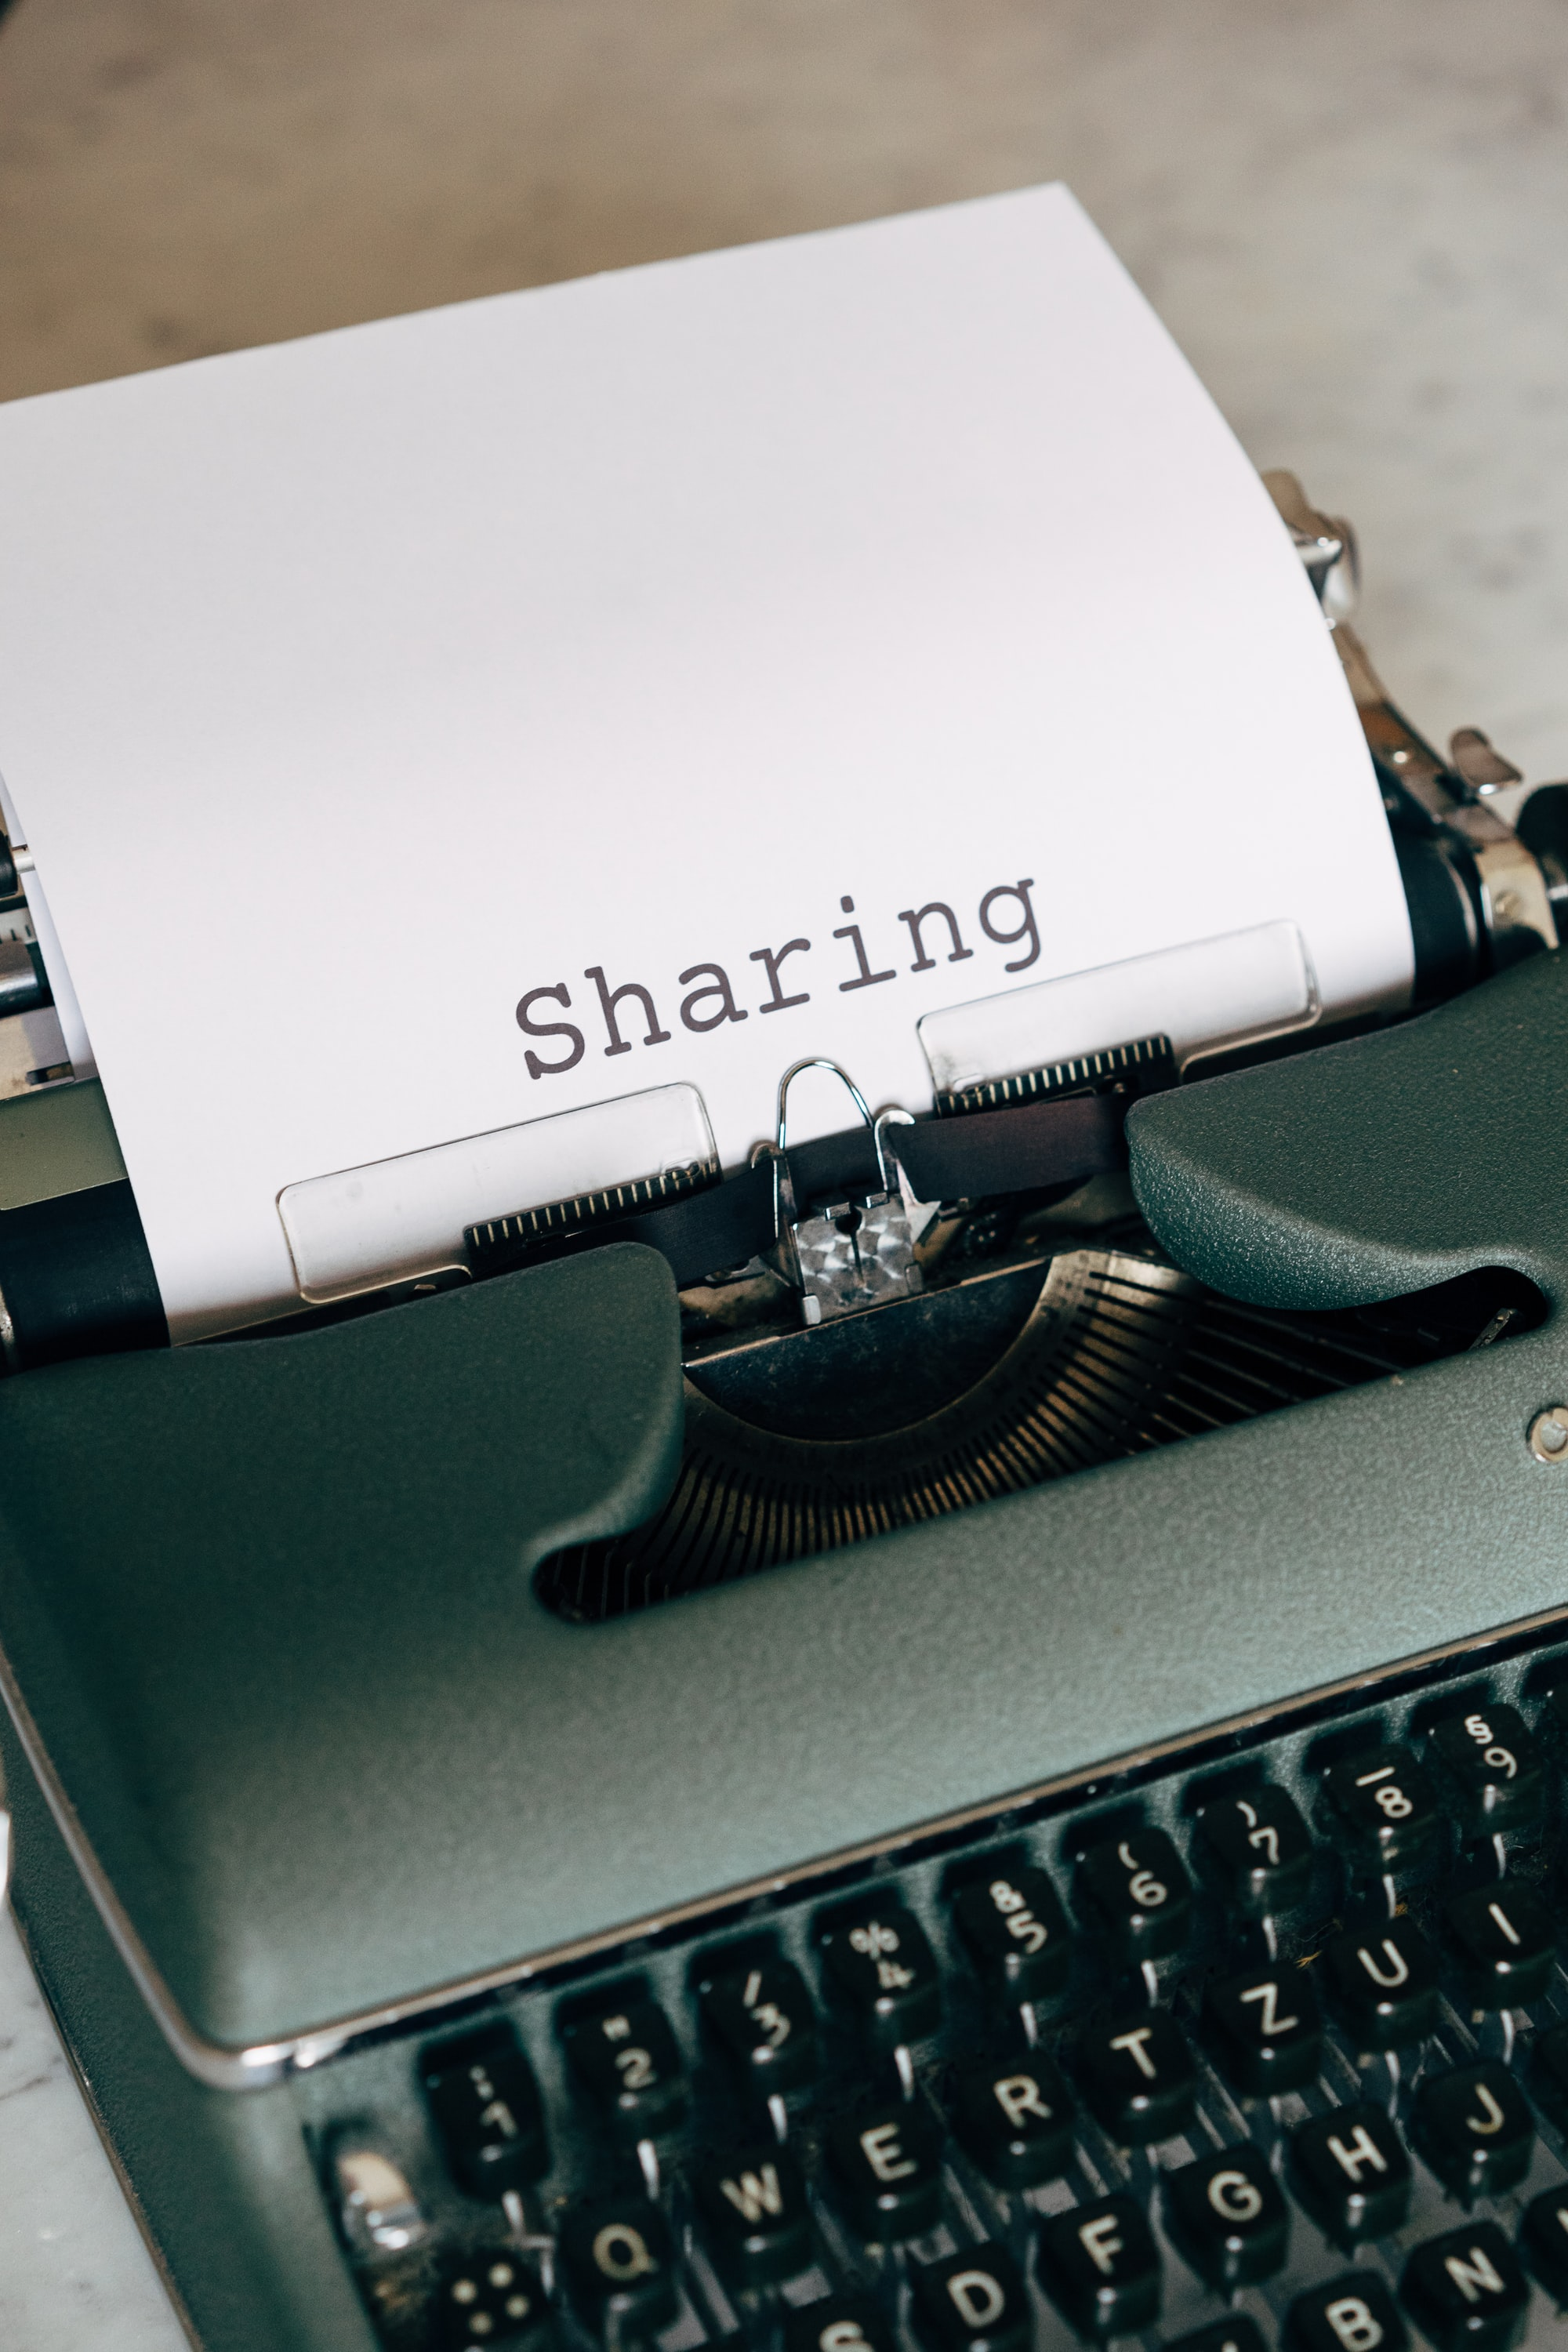 To Share or Not Share